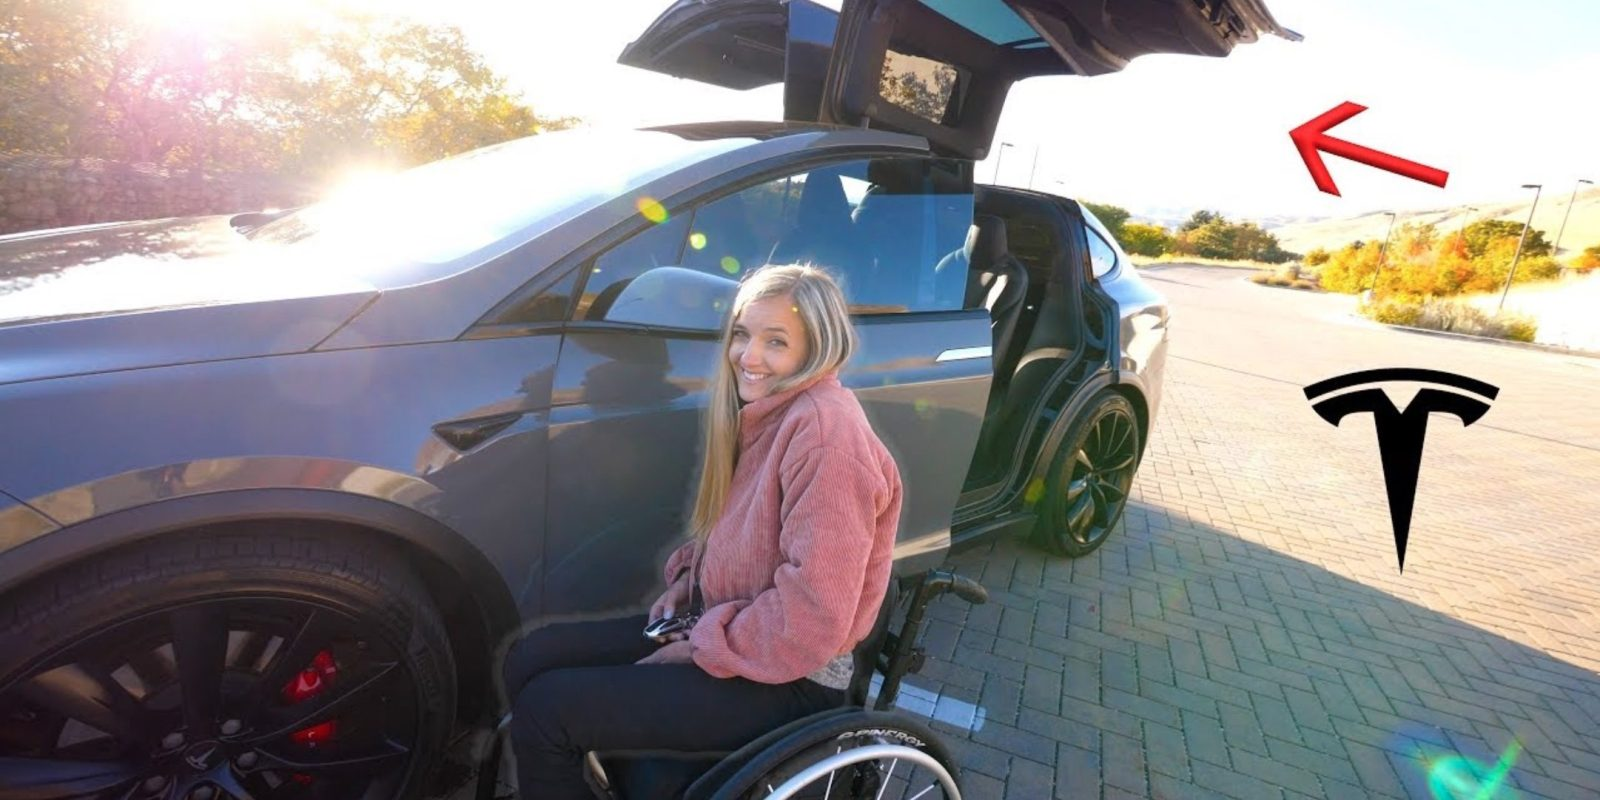 Tesla Smart Summon proves useful for wheelchair users